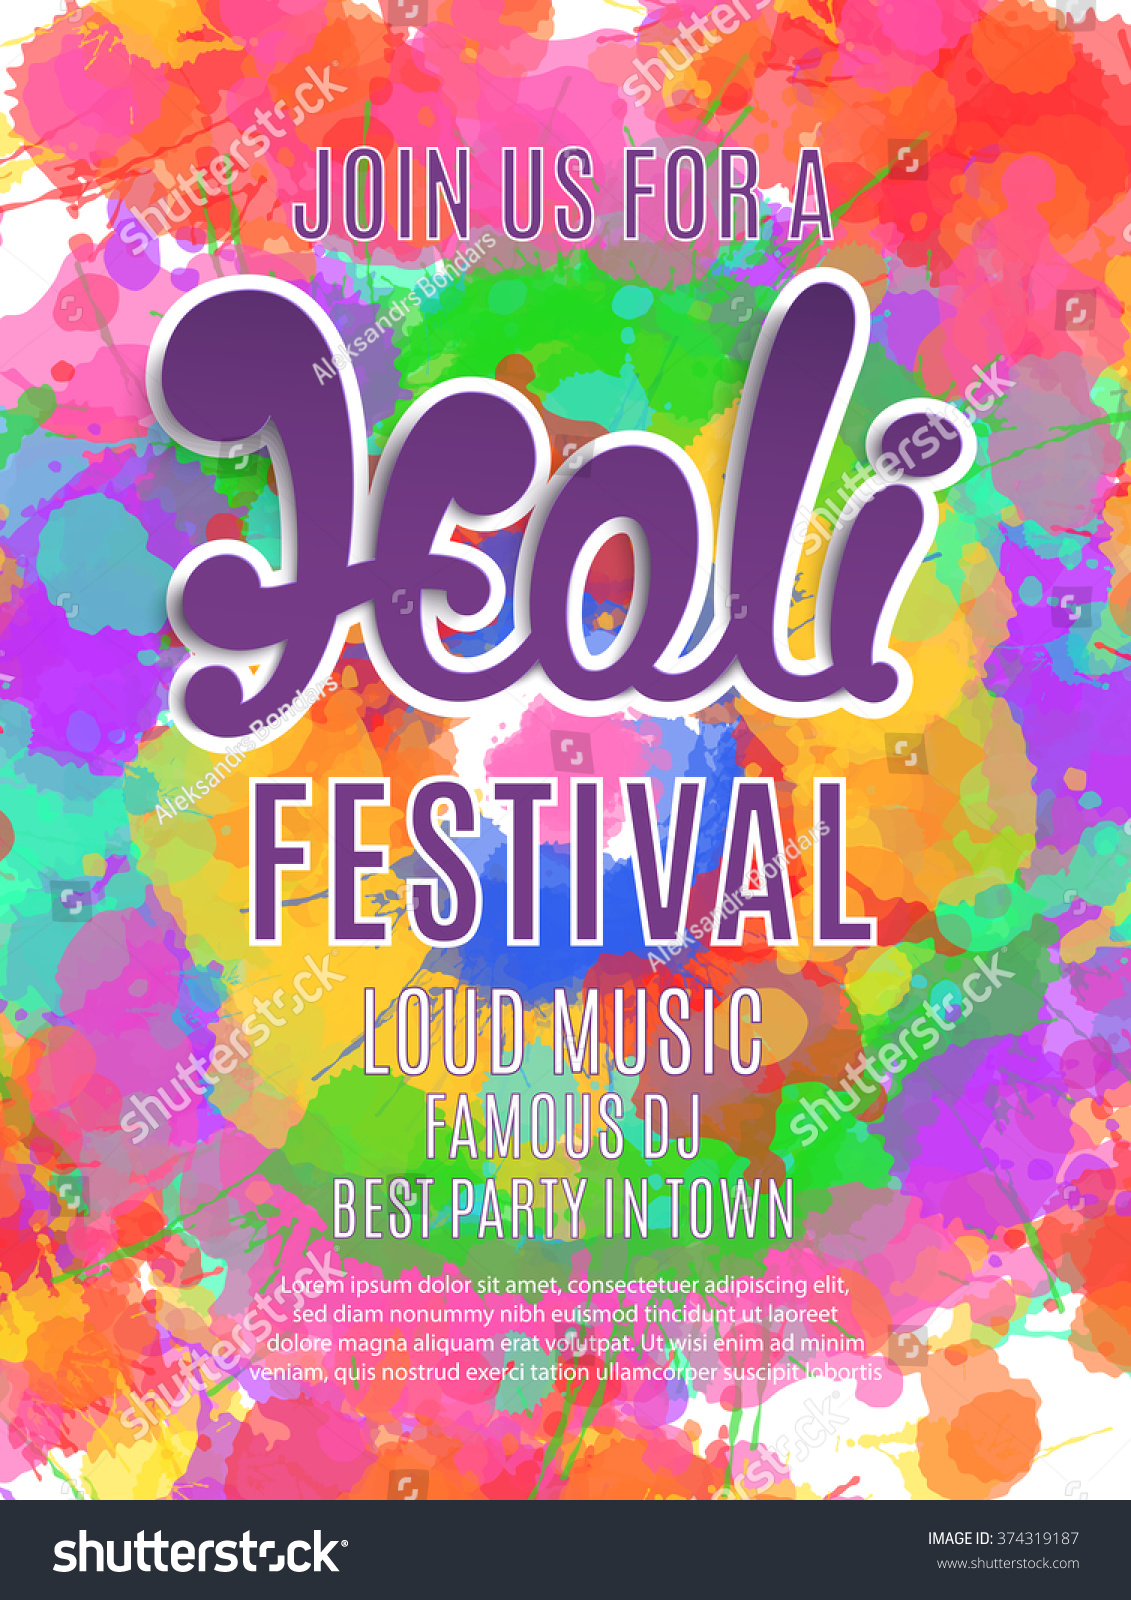 Holi Festival Poster Template Flyer Brochure Stock Photo (Photo ...